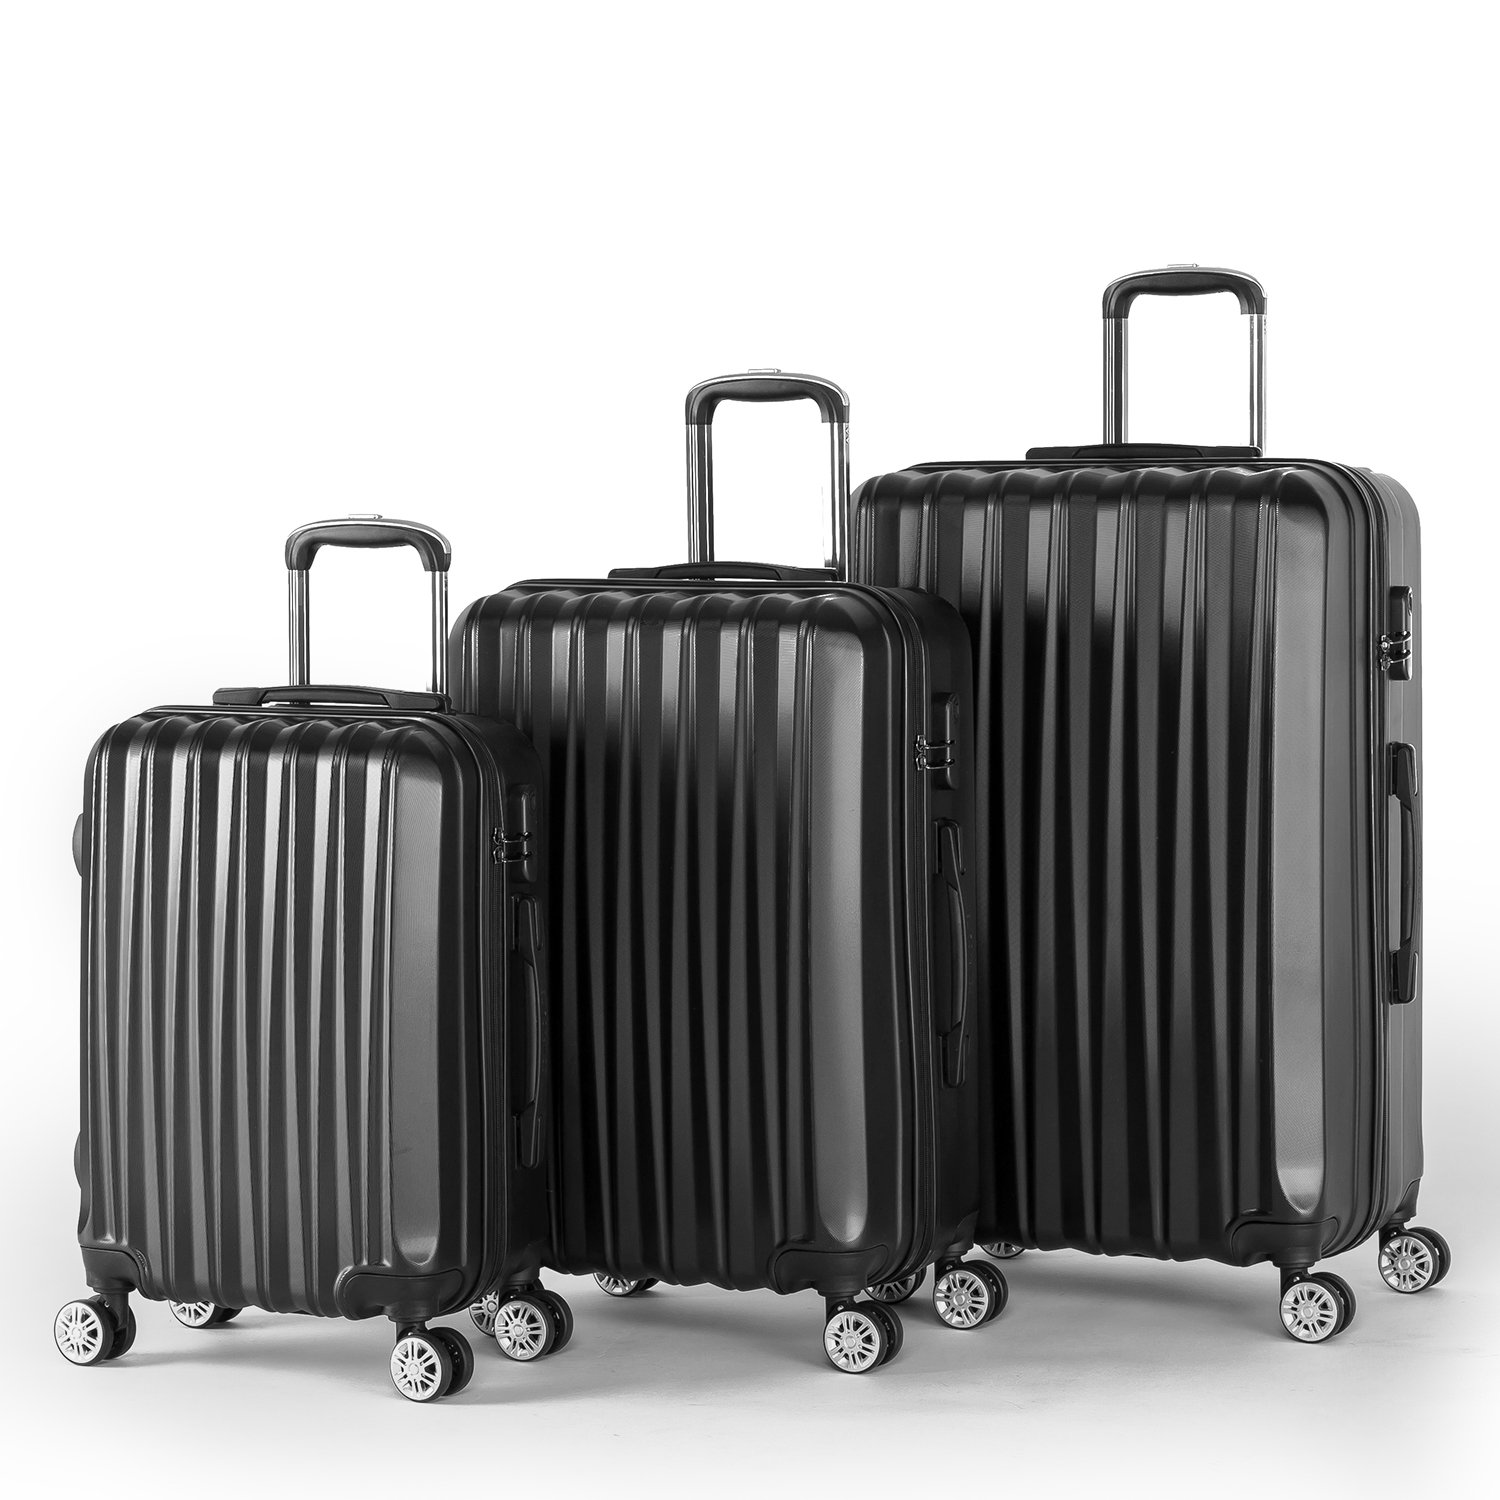 Compaclite Voyager ABS + PC 3 Piece Luggage Set Lightweight Spinner Suitcases, Black by Compaclite